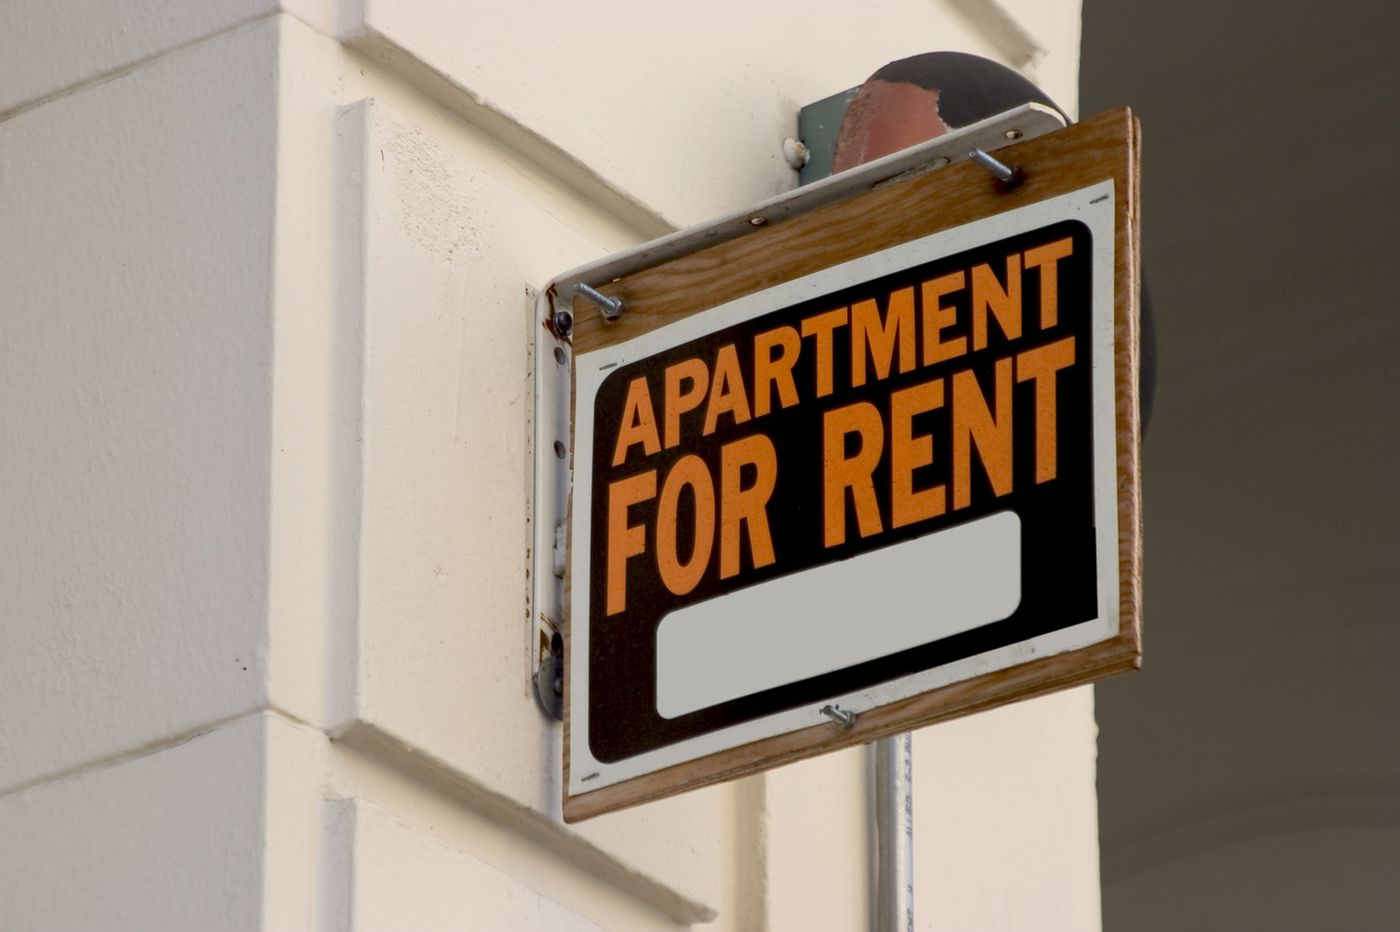 Good news for Philly renters? Depends on whose analysis you choose.